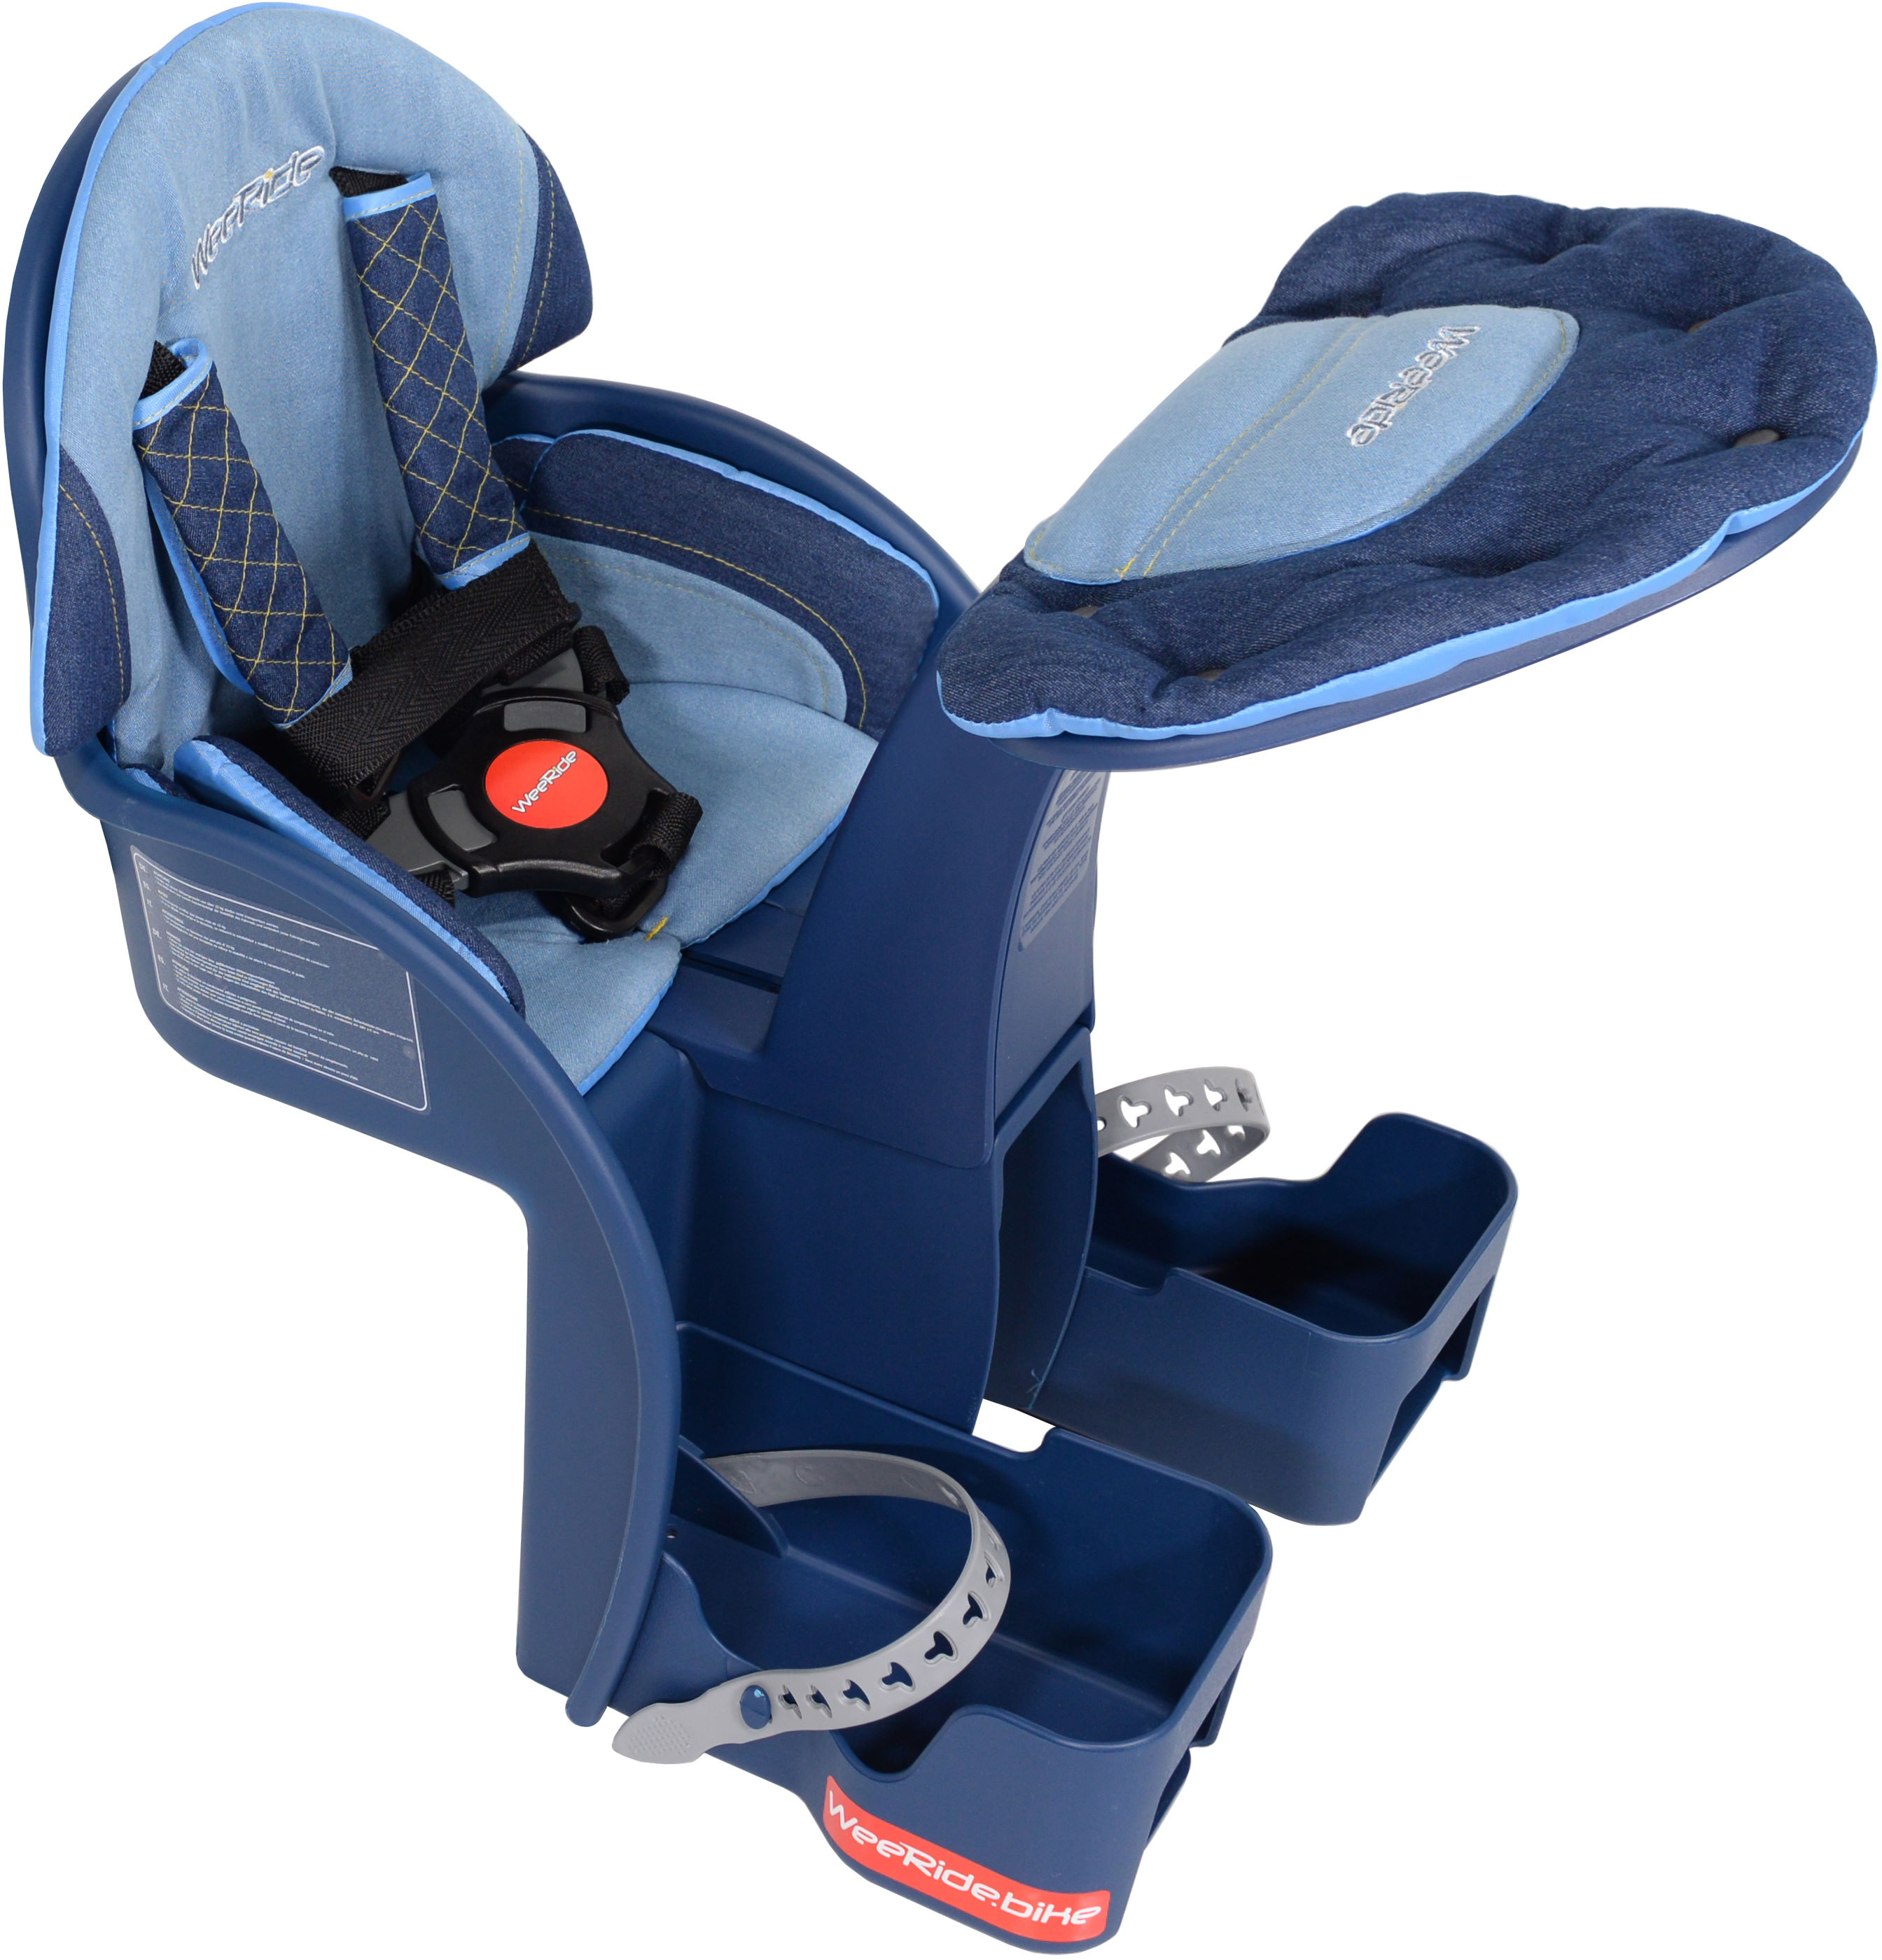 Details about  /WeeRide Kangaroo Front-Facing Child Bike Seat Shipped promptly